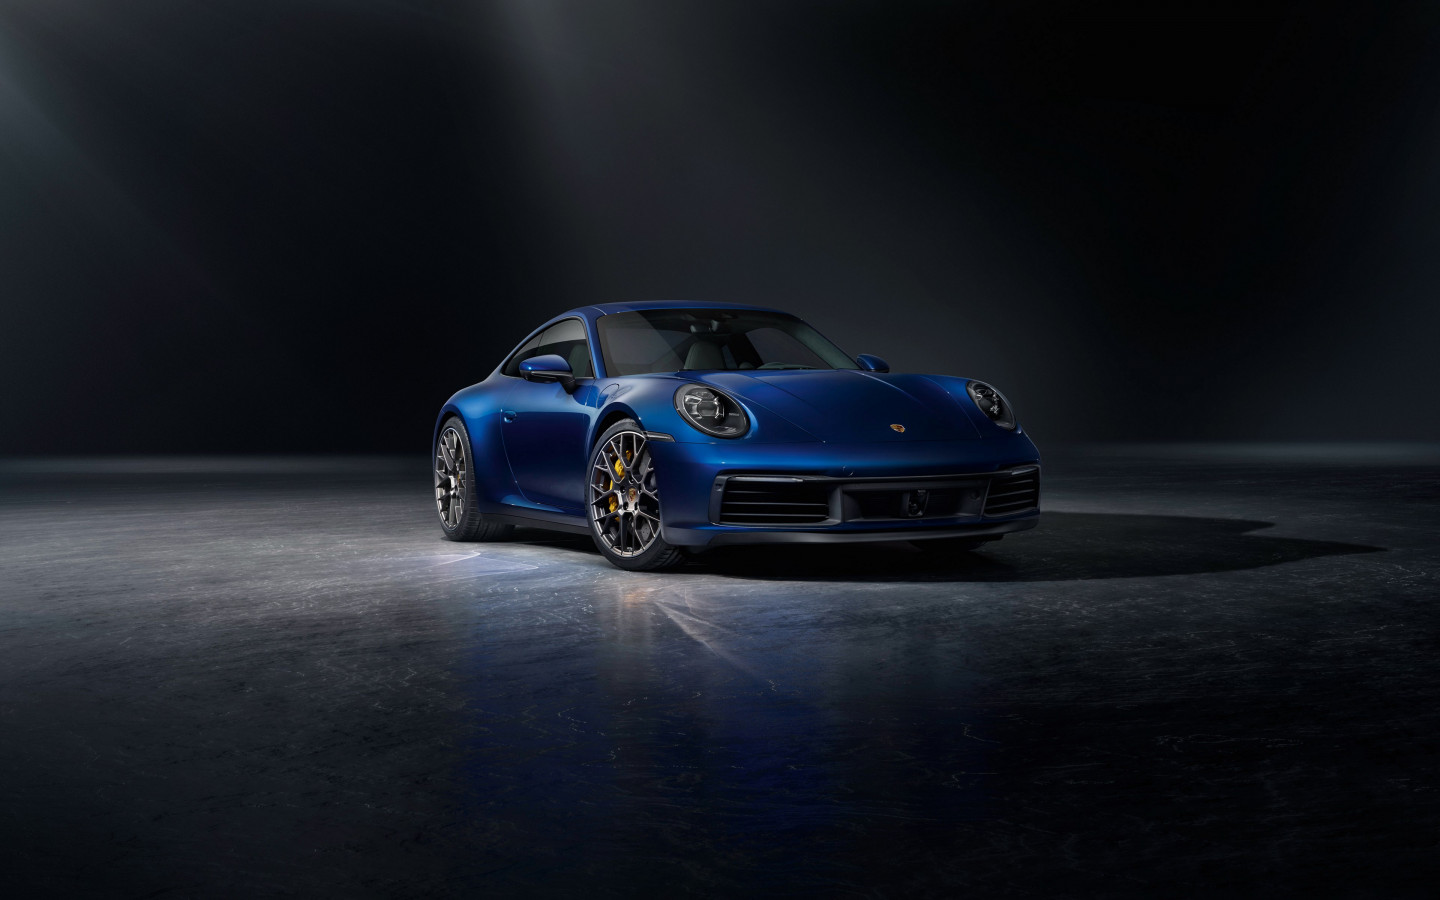 Porsche 911 Carrera 2020 4S wallpaper 1440x900